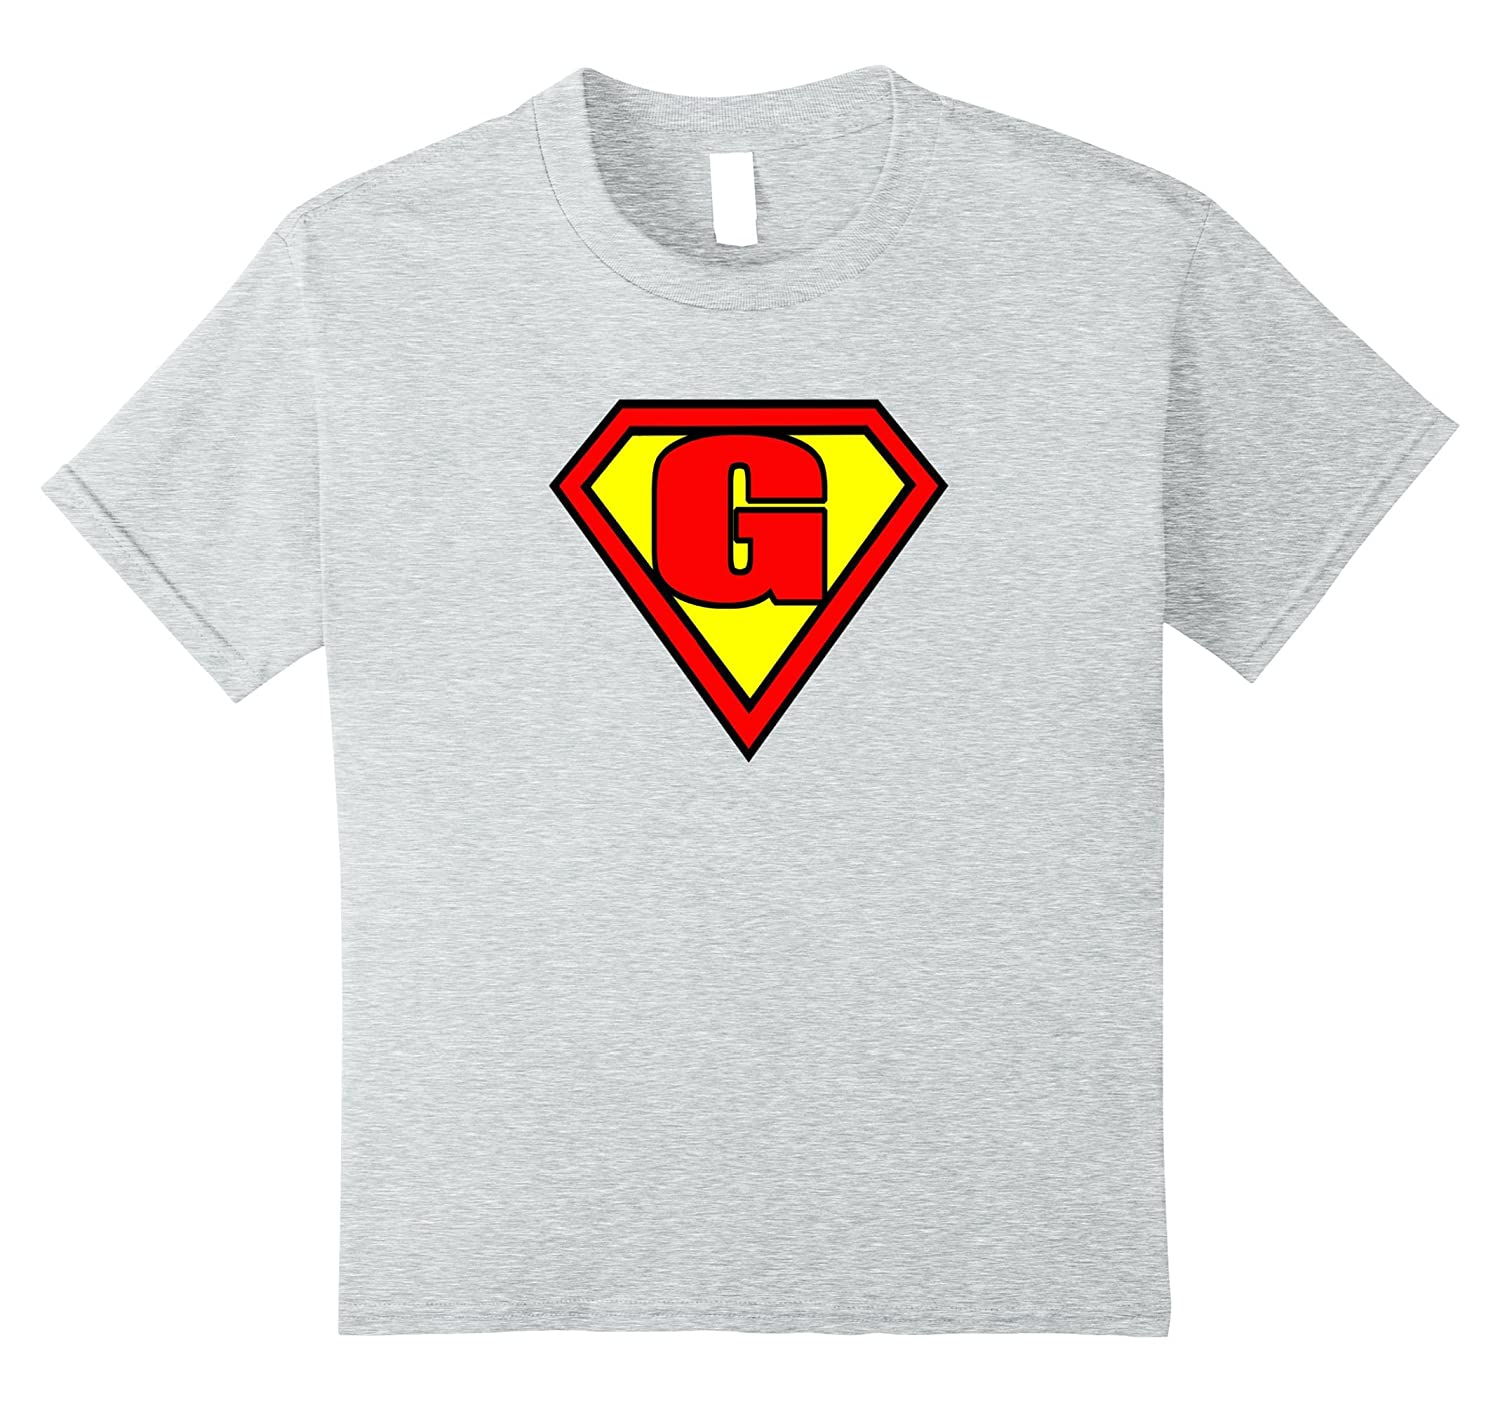 G Names For Girls & Boys Shirt Baby Names Starting with G